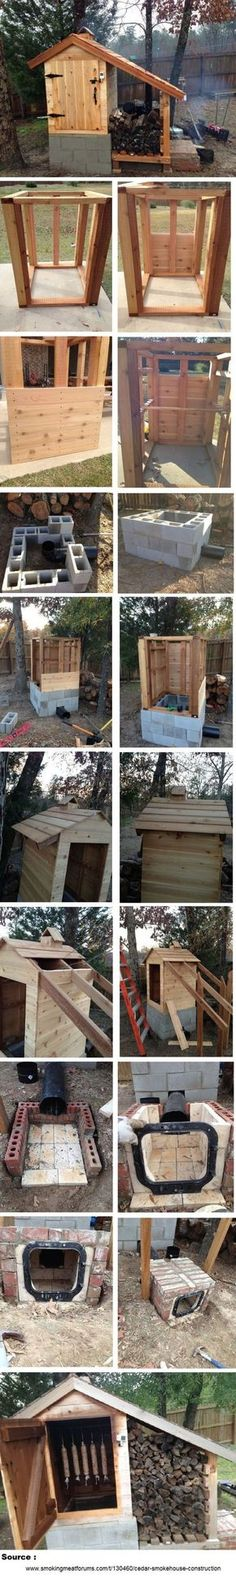 Learn How To Build A Smokehouse With This Awesome Project! from Smoking Meat Forum user Nick from Texas,